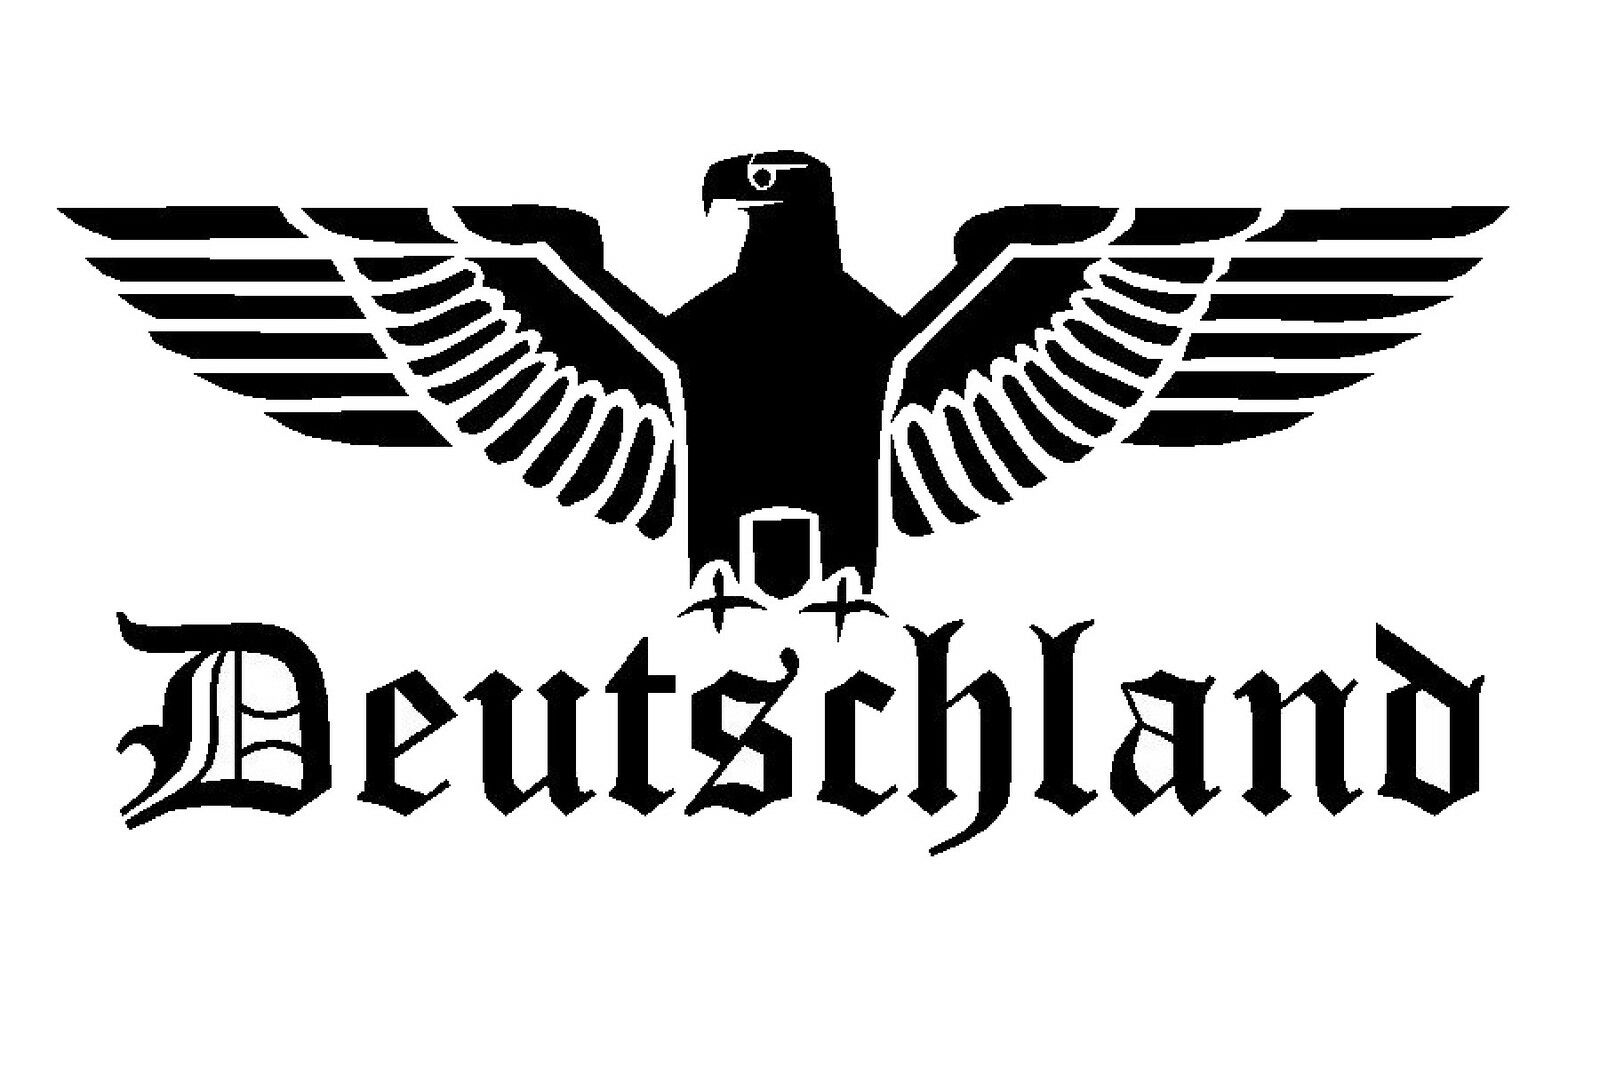 reichsadler auto aufkleber sticker schrift adler deutschland 60x30cm ebay. Black Bedroom Furniture Sets. Home Design Ideas